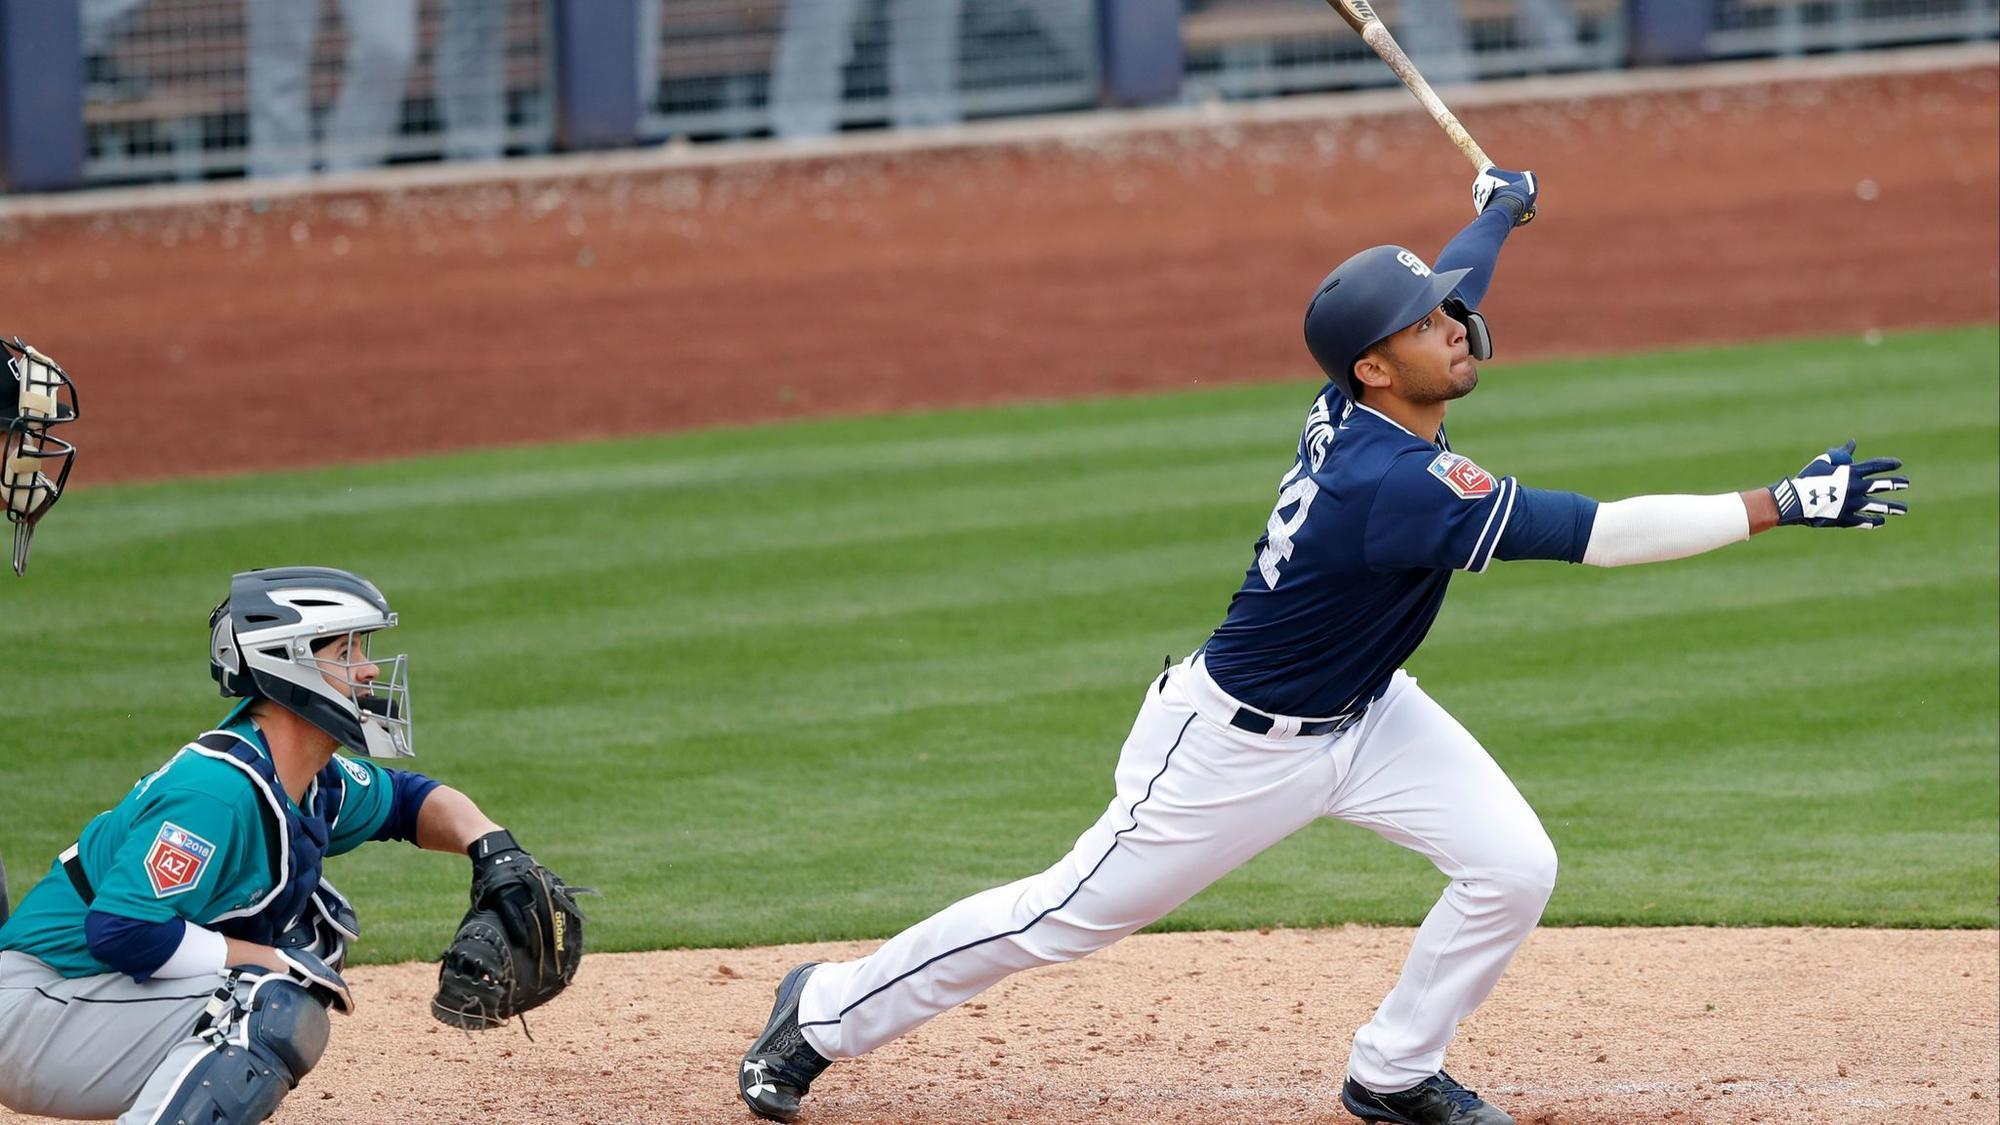 Sd-sp-padres-fernando-tatis-home-run-0223